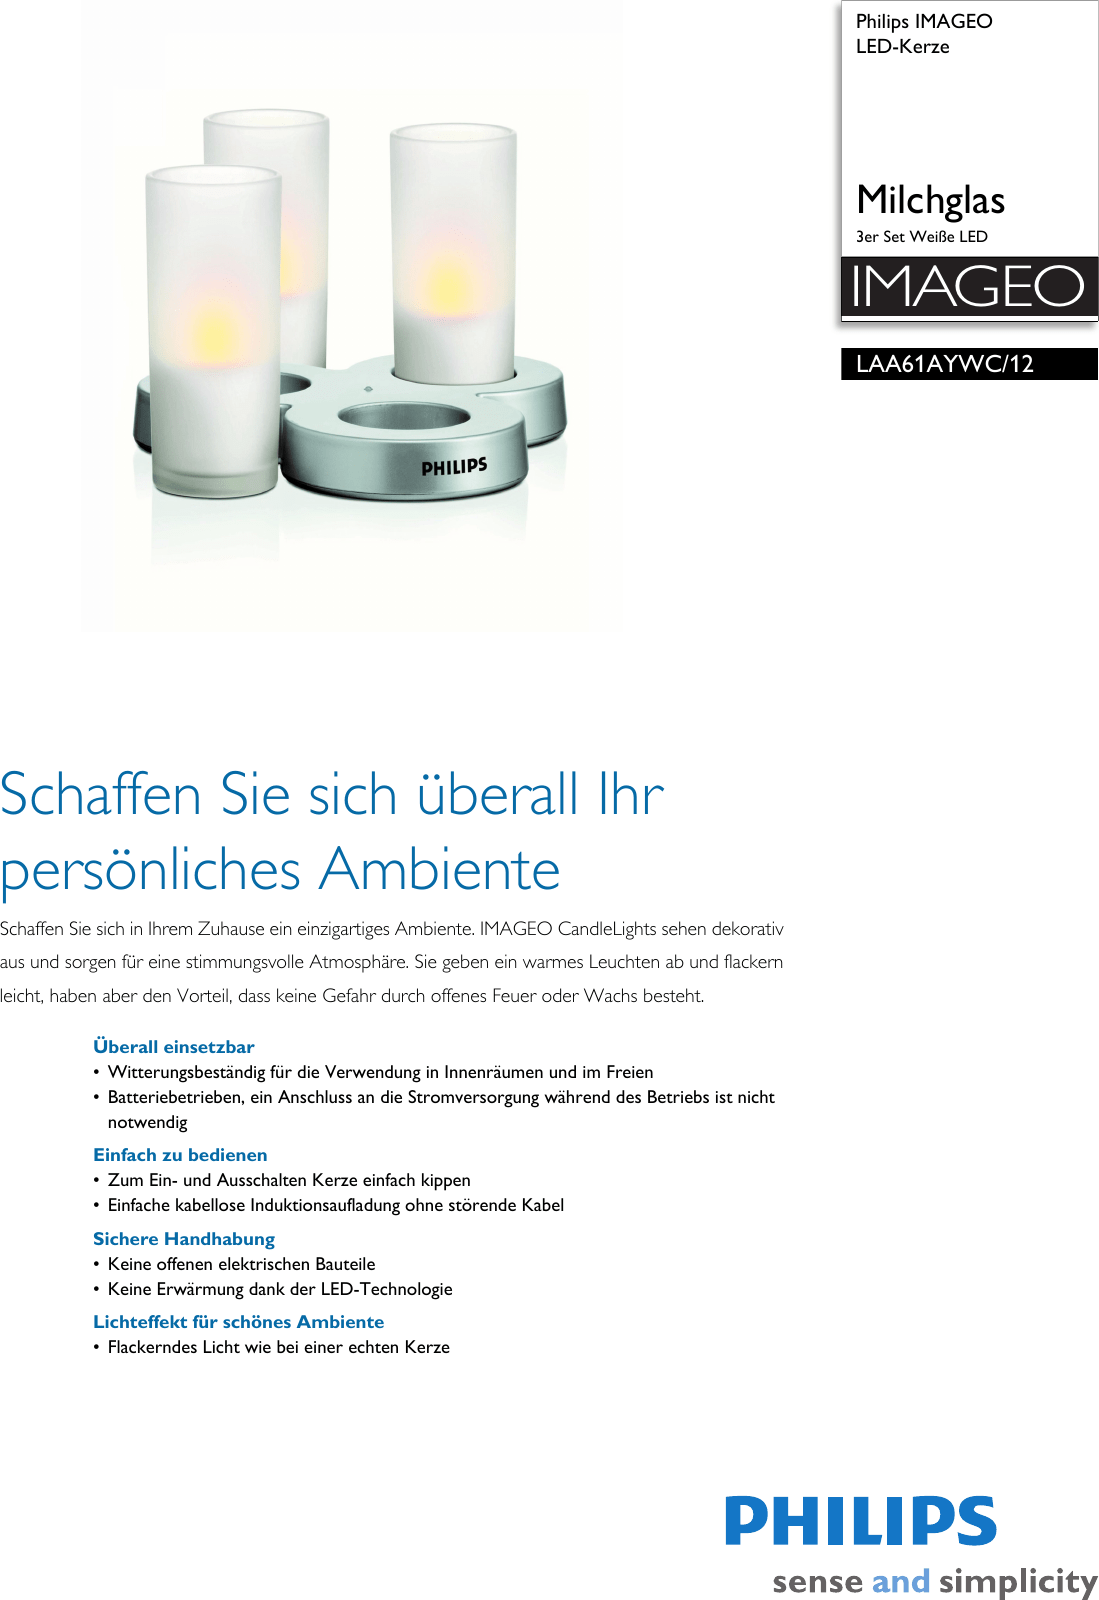 Philips Imageo Philips Laa61aywc 12 Leaflet Laa61aywc 12 Released Germany German